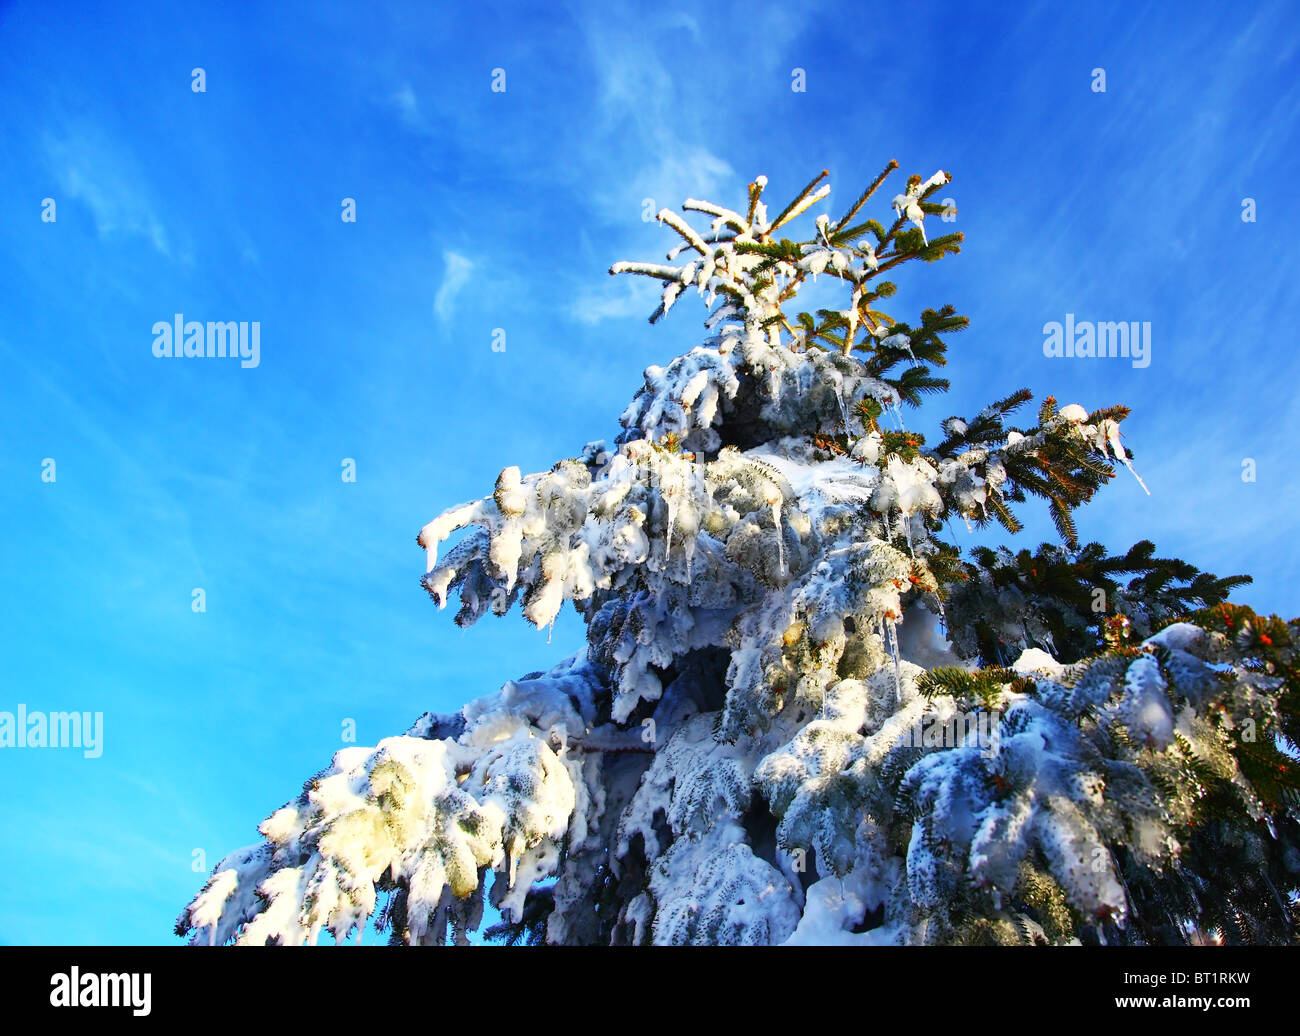 Christmas tree covered with snow over blue sky - Stock Image